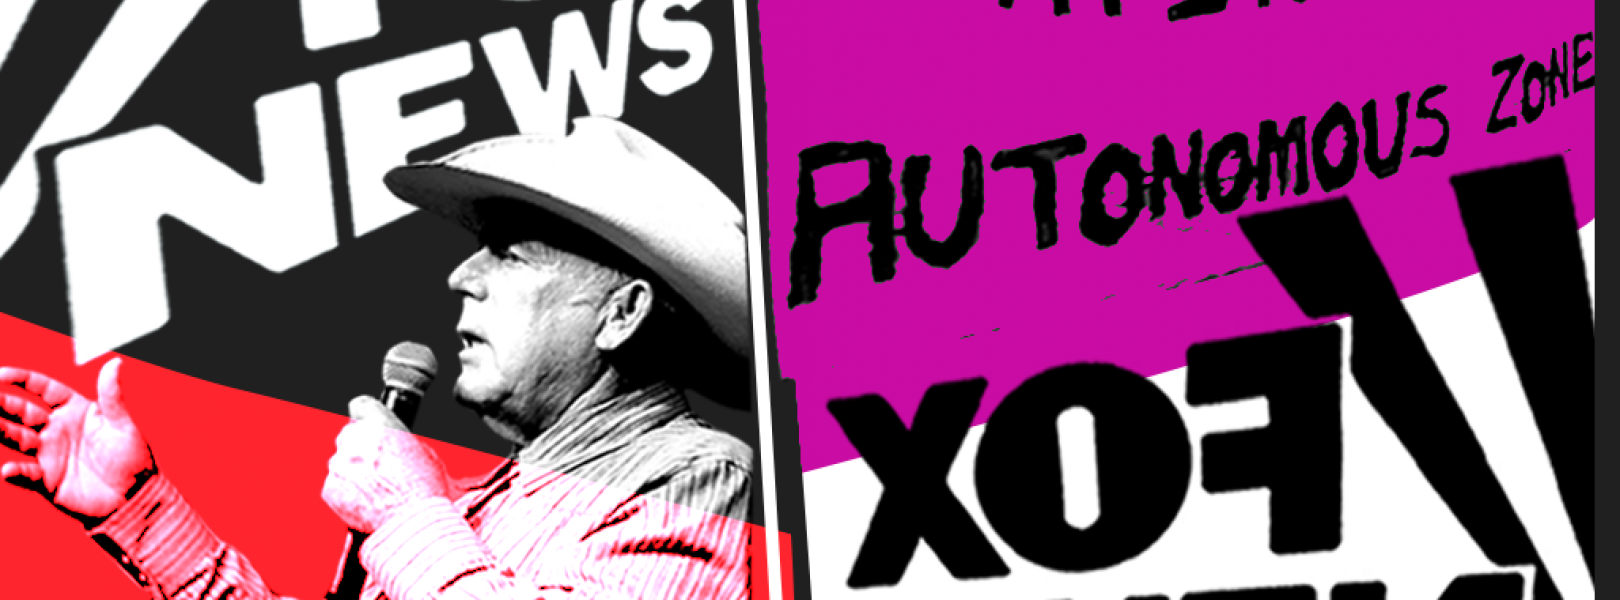 Image showing Cliven Bundy and a sign from the Seattle autonomous zone with the Fox News logo